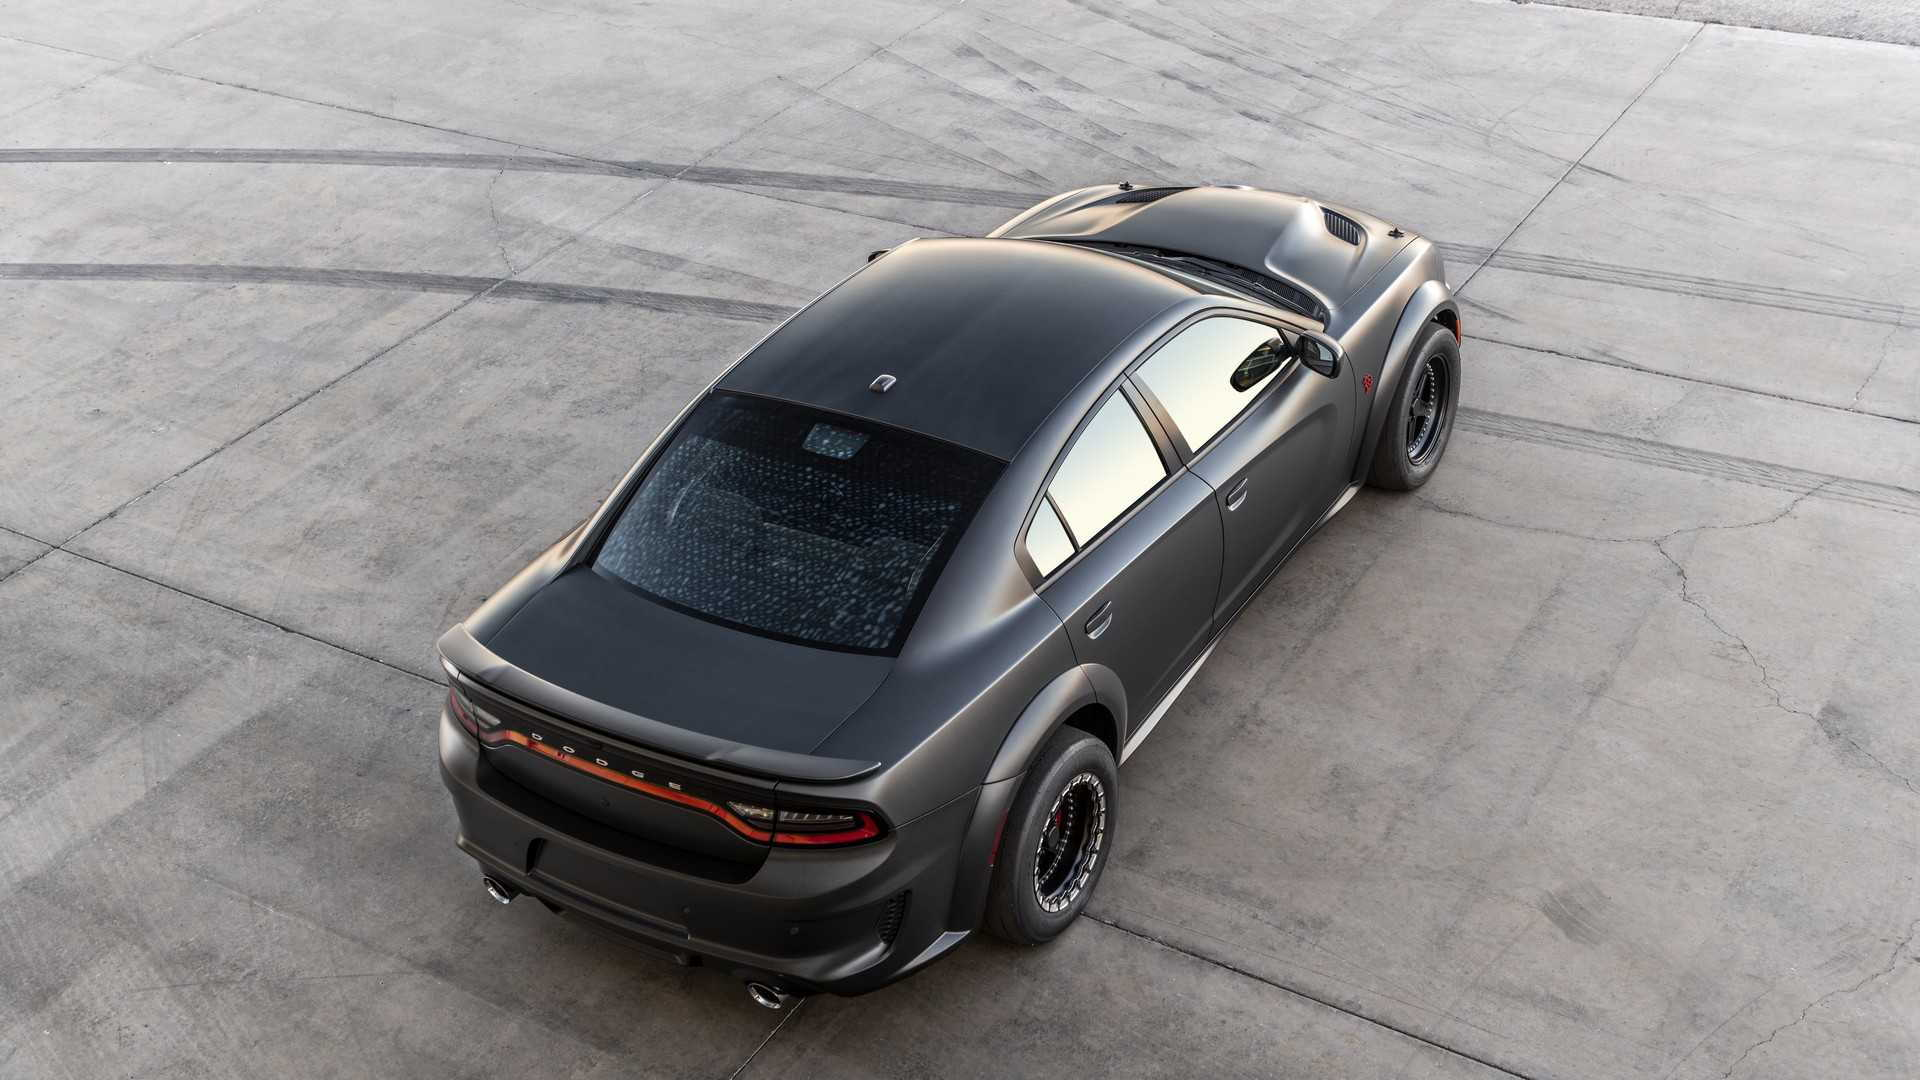 2020 Dodge Charger SRT Hellcat Widebody by SpeedKore Performance Group